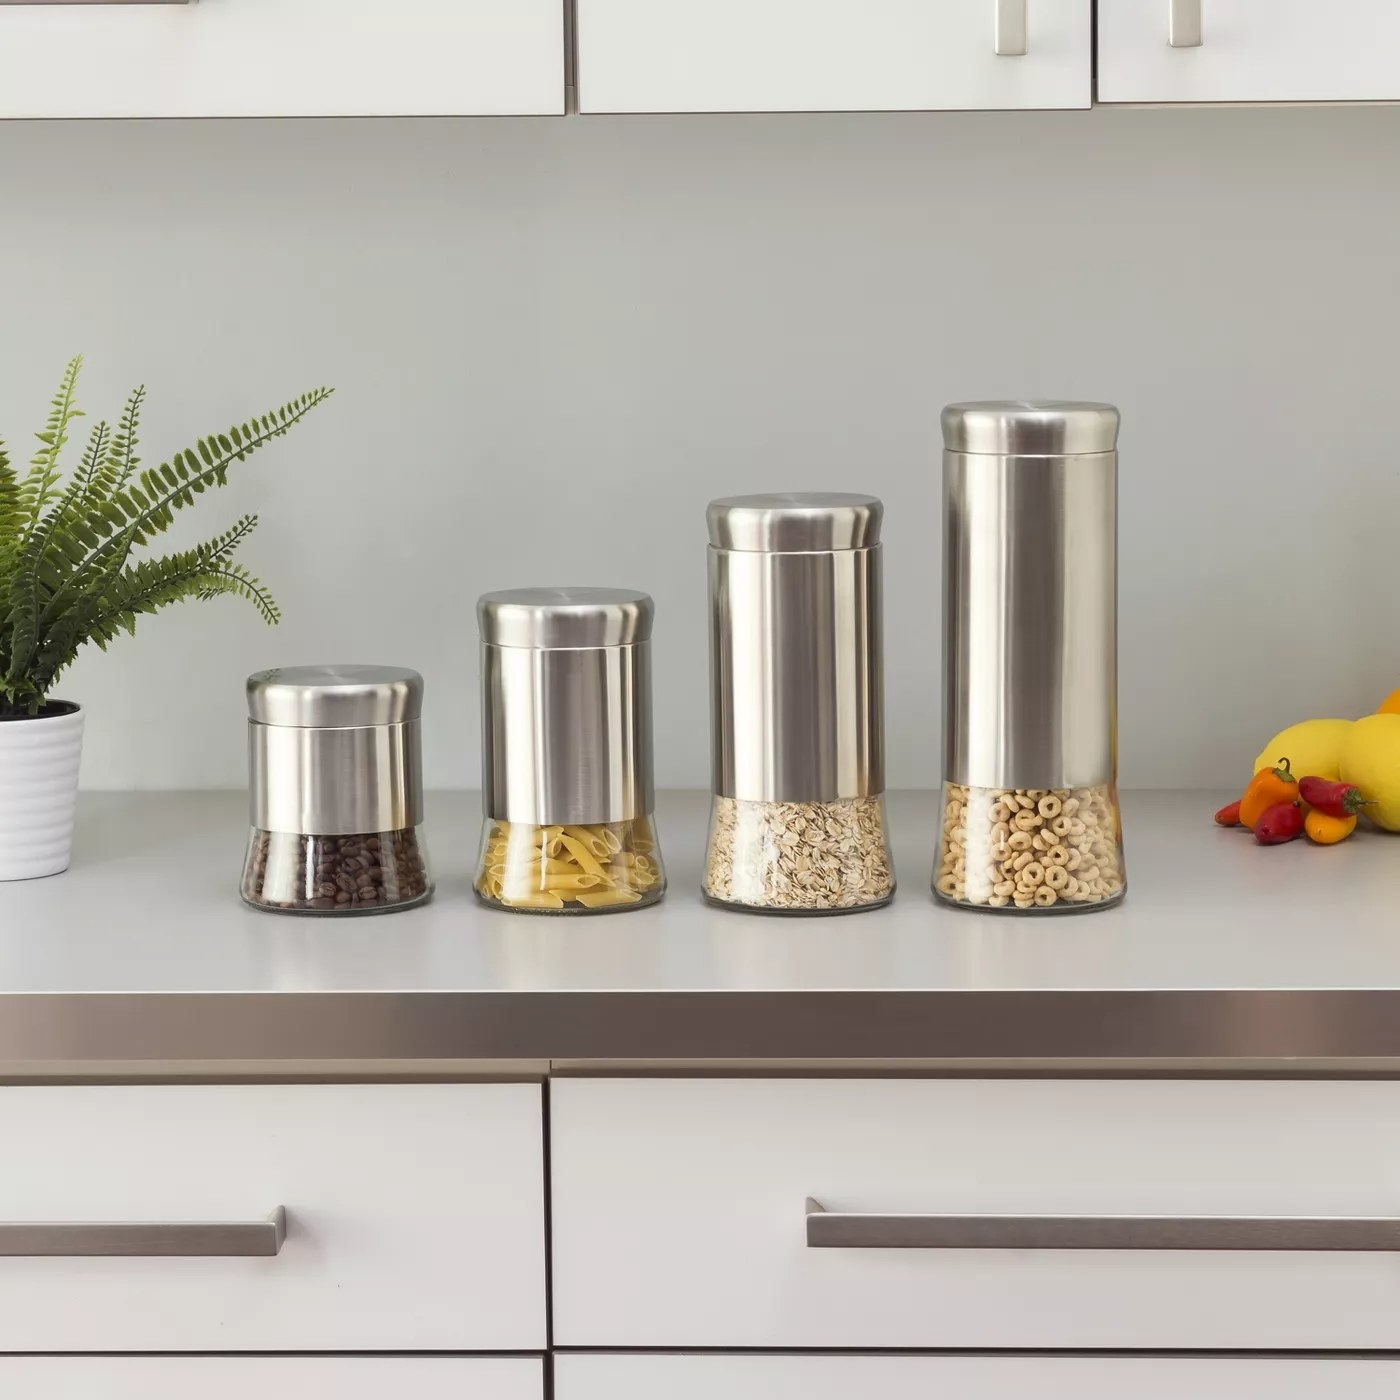 The four stainless steel canisters